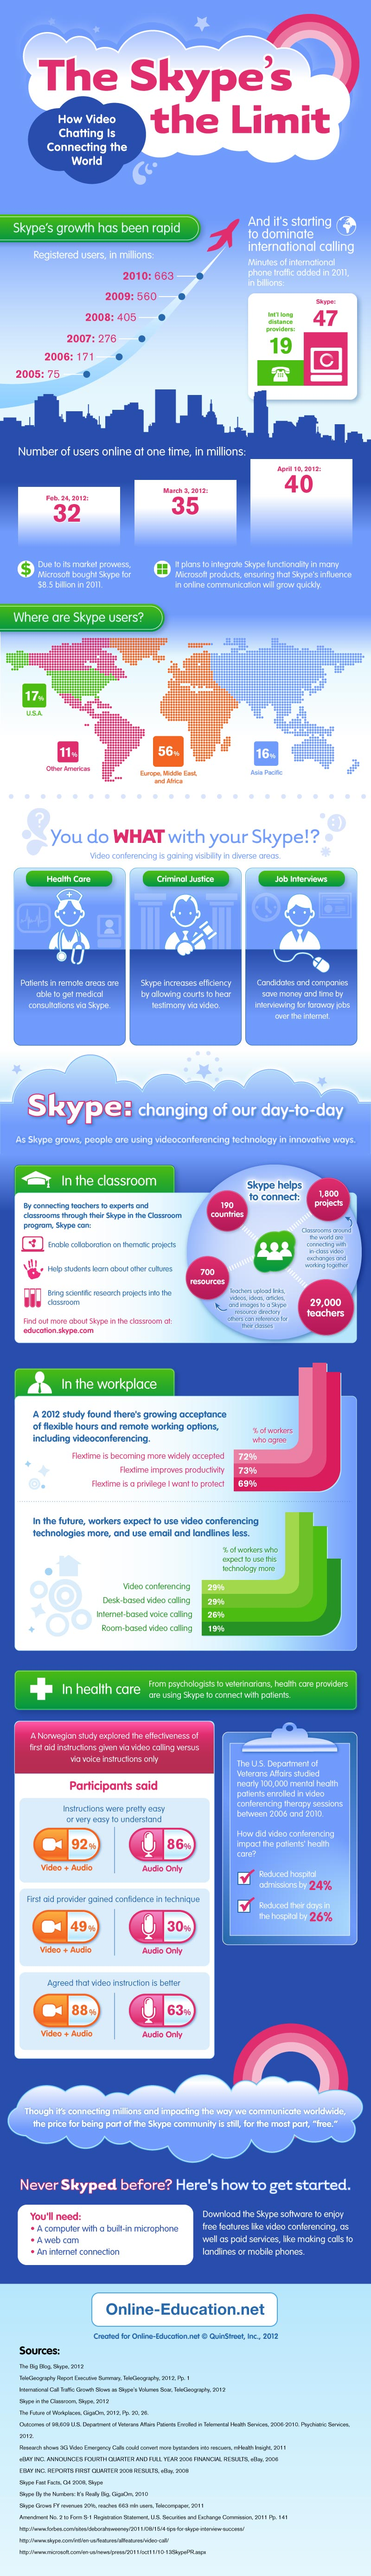 The Skypes the Limit: How Video Chatting is Connecting the World [Infographic] image super skype1